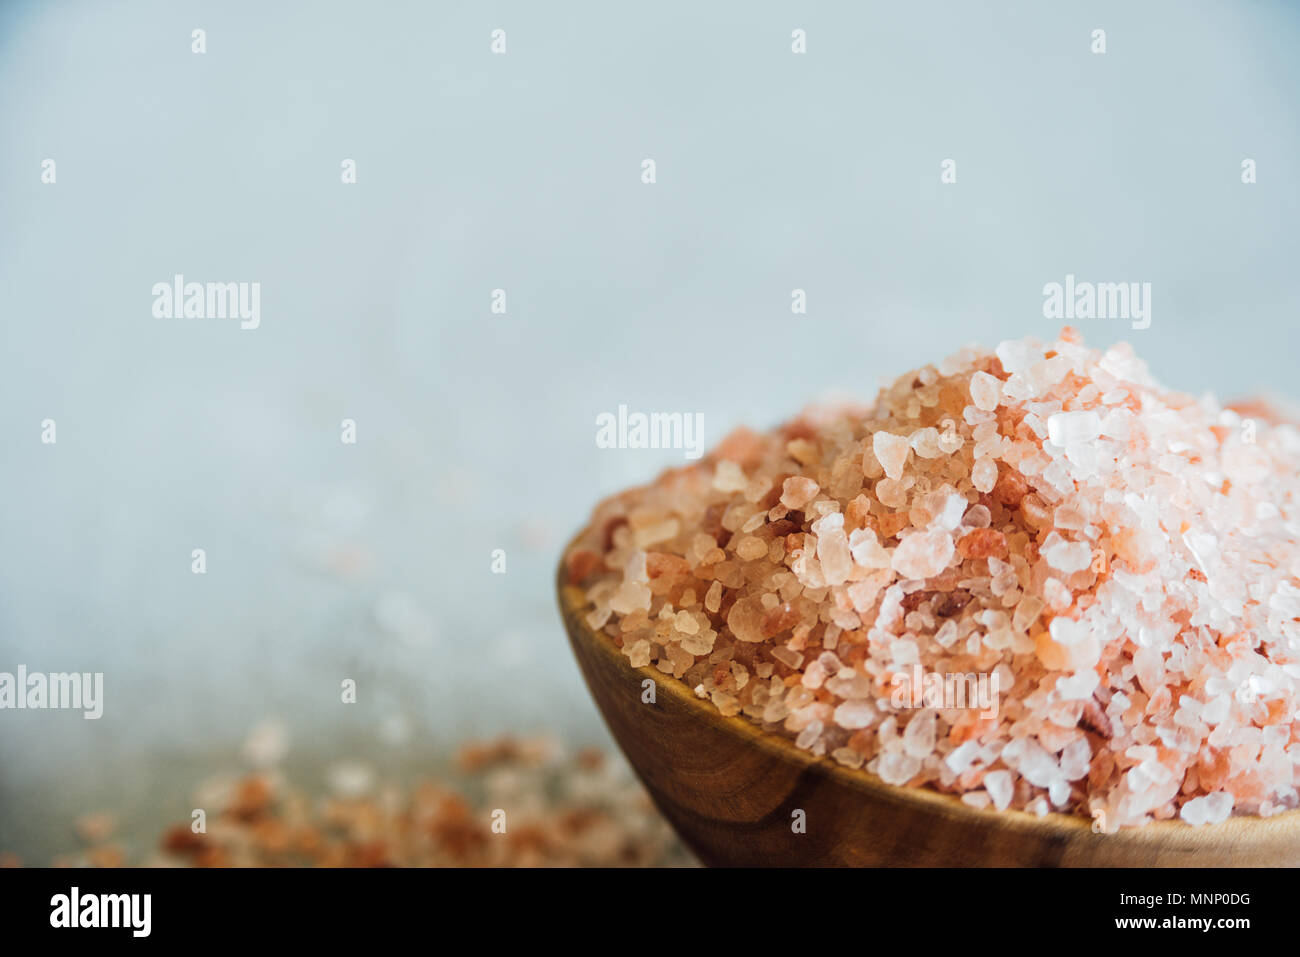 Wooden bowl with pink salt on neutral background Stock Photo